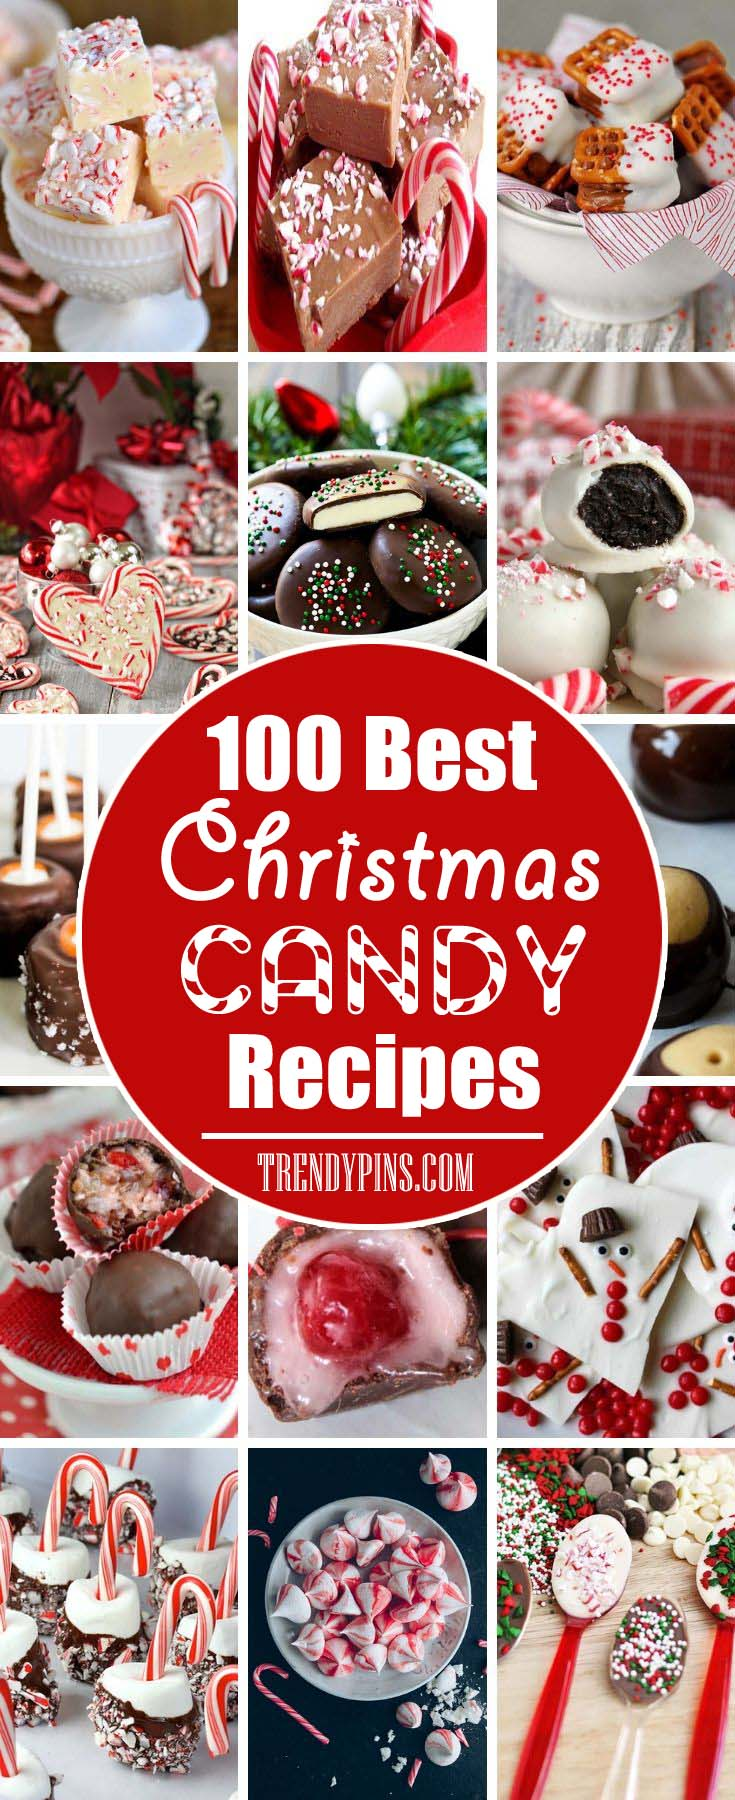 100 Best Christmas Candy Recipes #Christmas #candy #recipes #trendypins